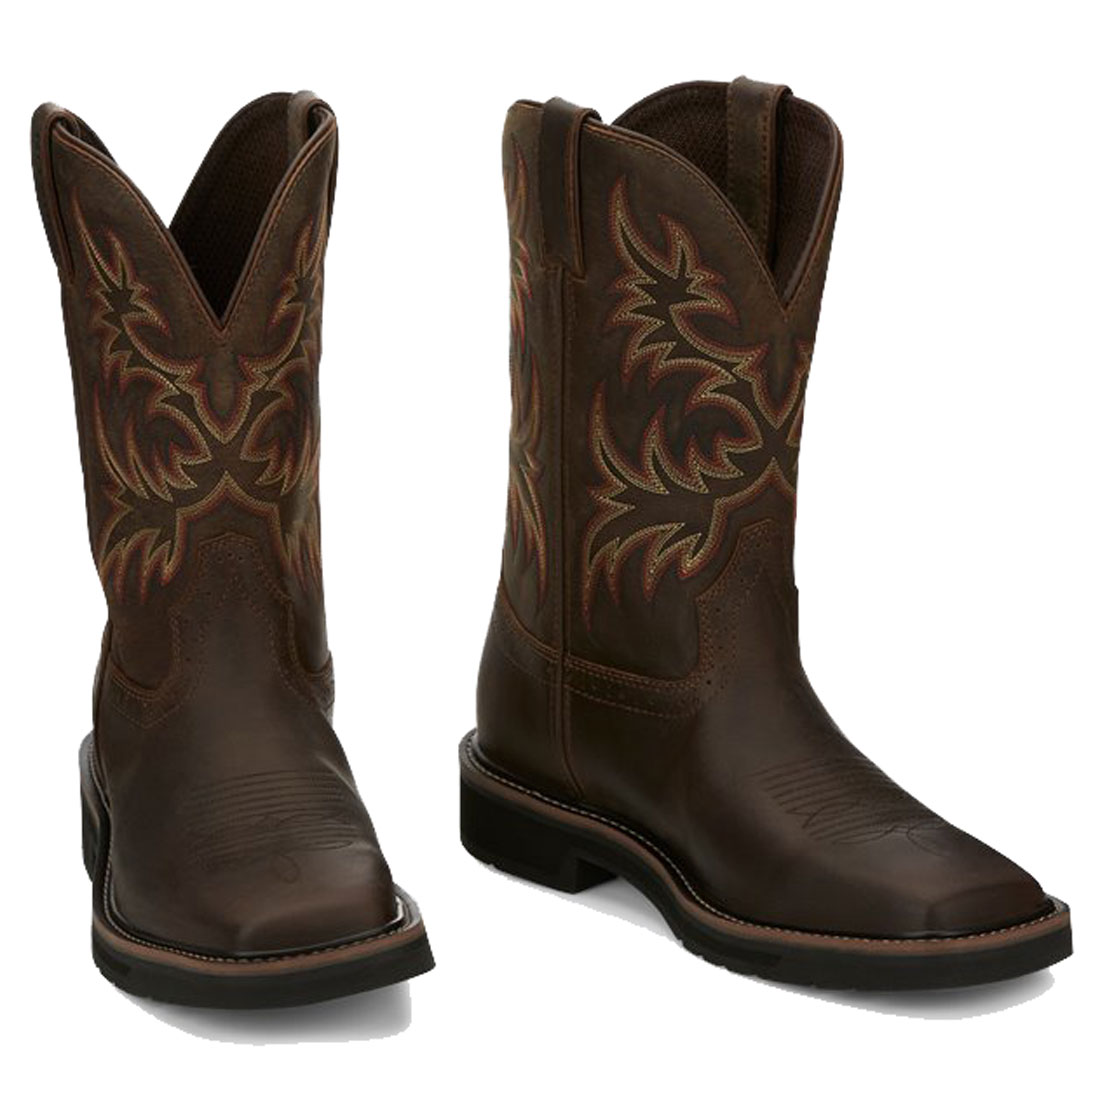 JUSTIN SE4681 MEN'S RUGGED TAN COWHIDE SQUARE TOE WORK BOOTS